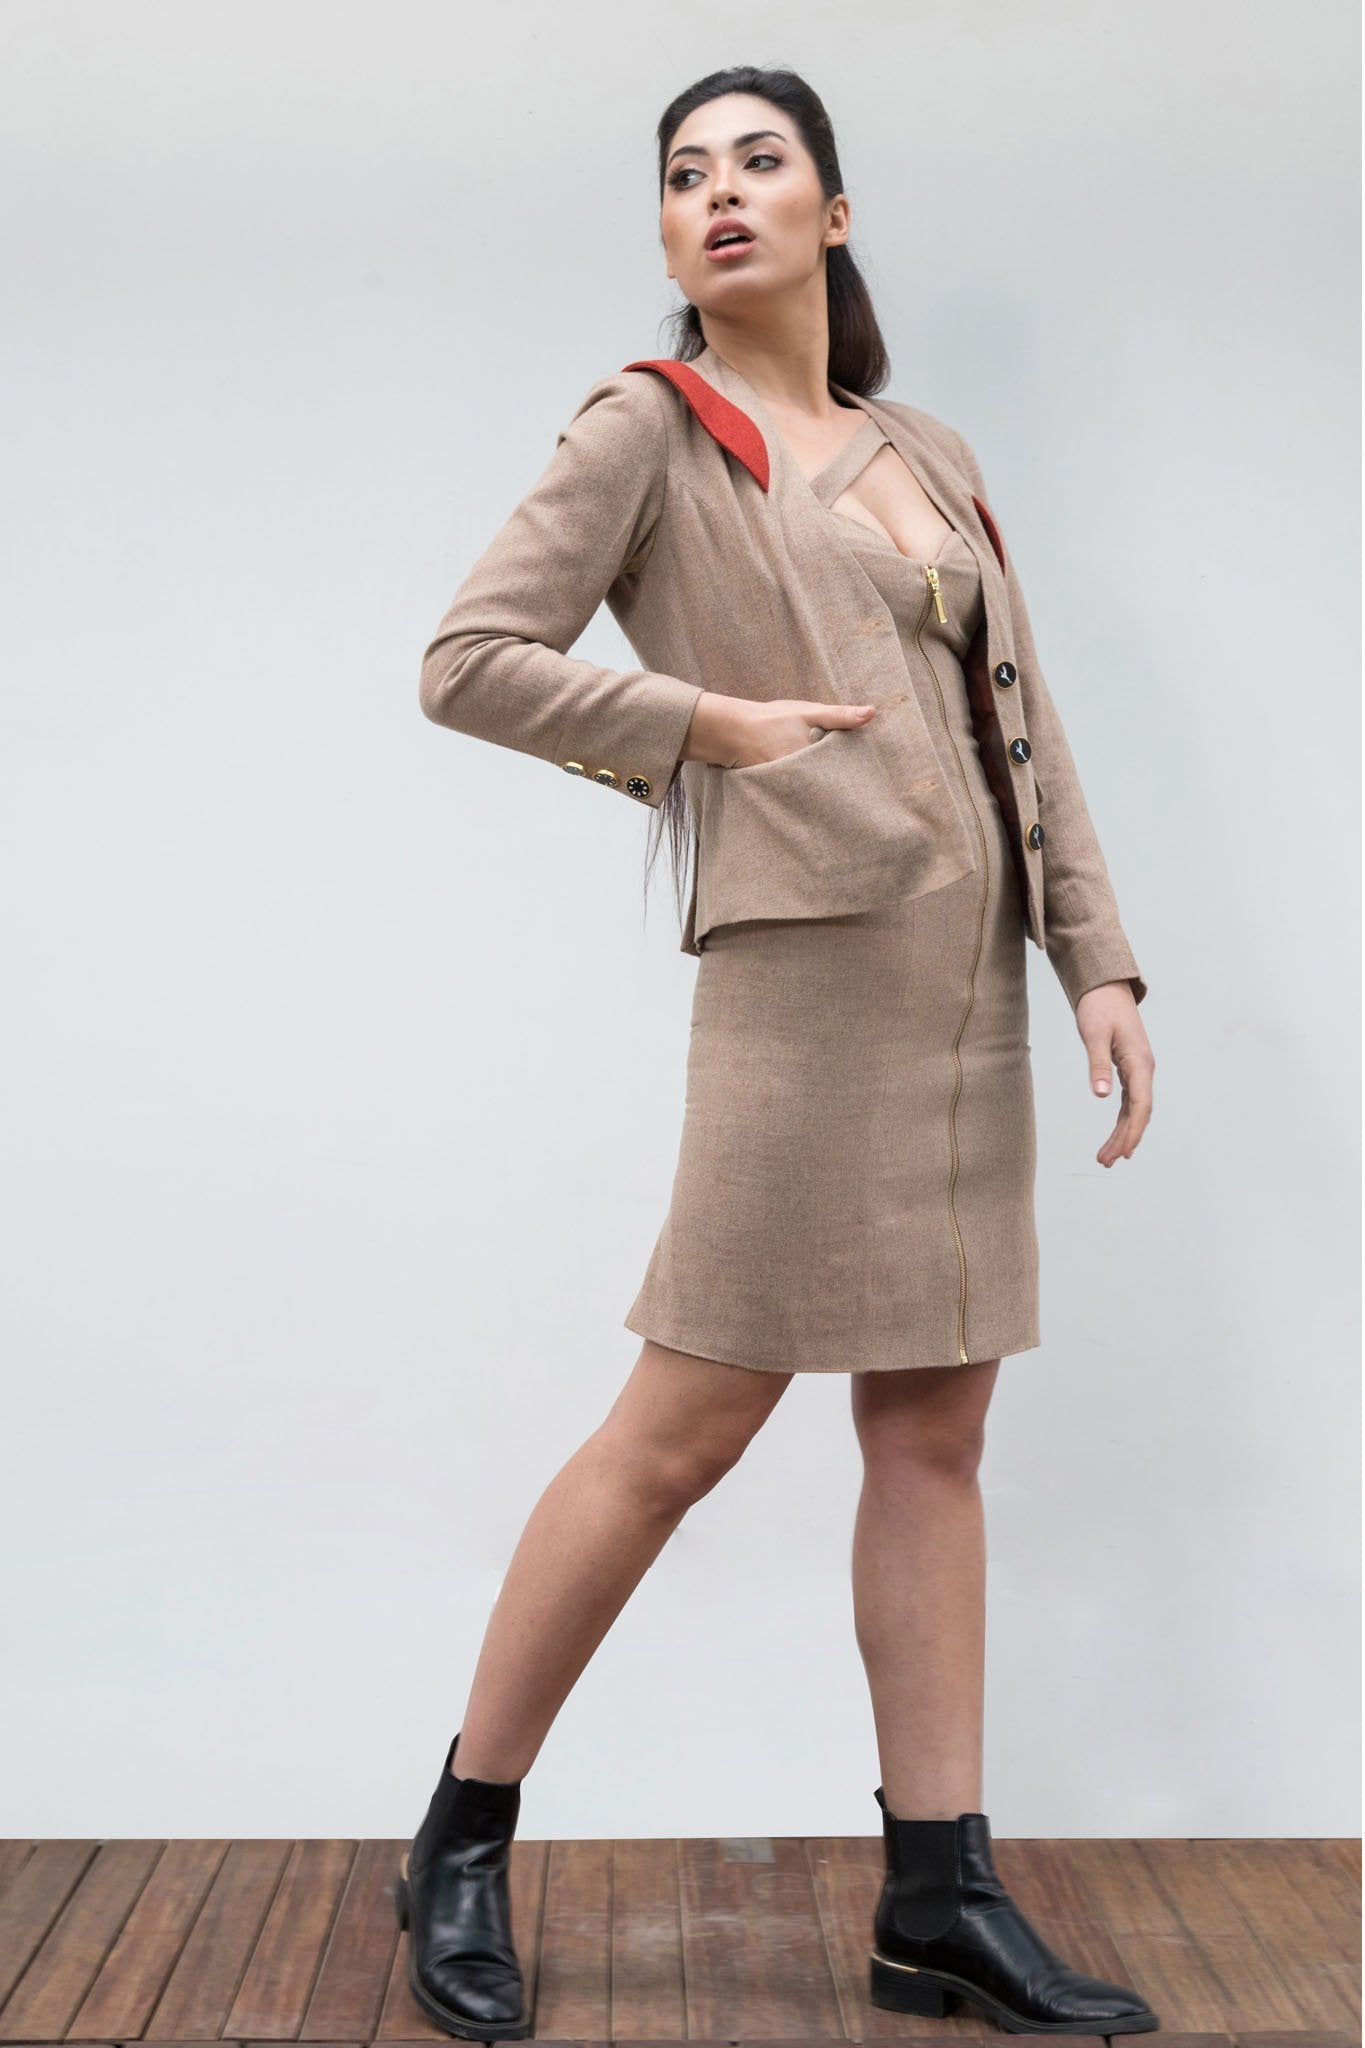 Stroked Camel & Tan Wool Jacket - The Clothing LoungeSatatland